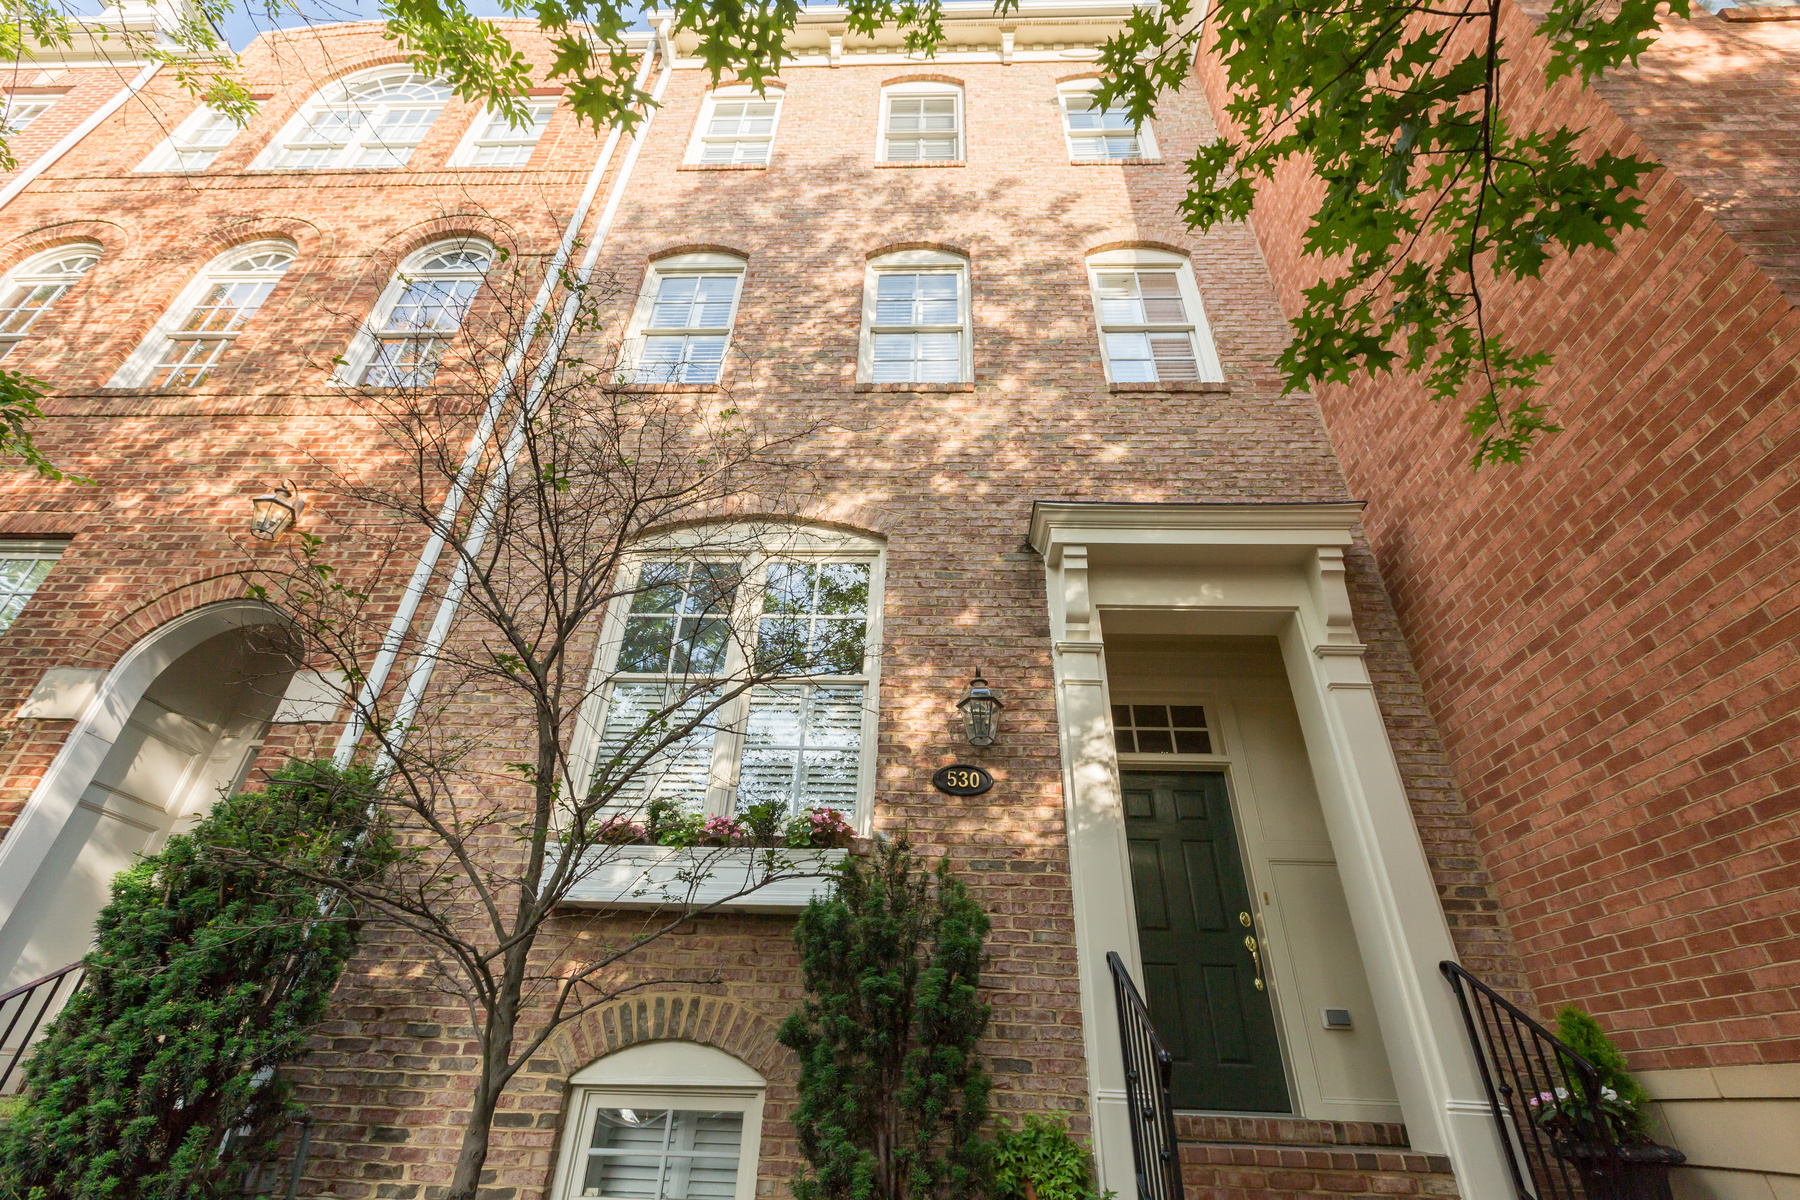 Townhouse for Sale at 530 Pitt Street N, Alexandria Alexandria, Virginia, 22314 United States